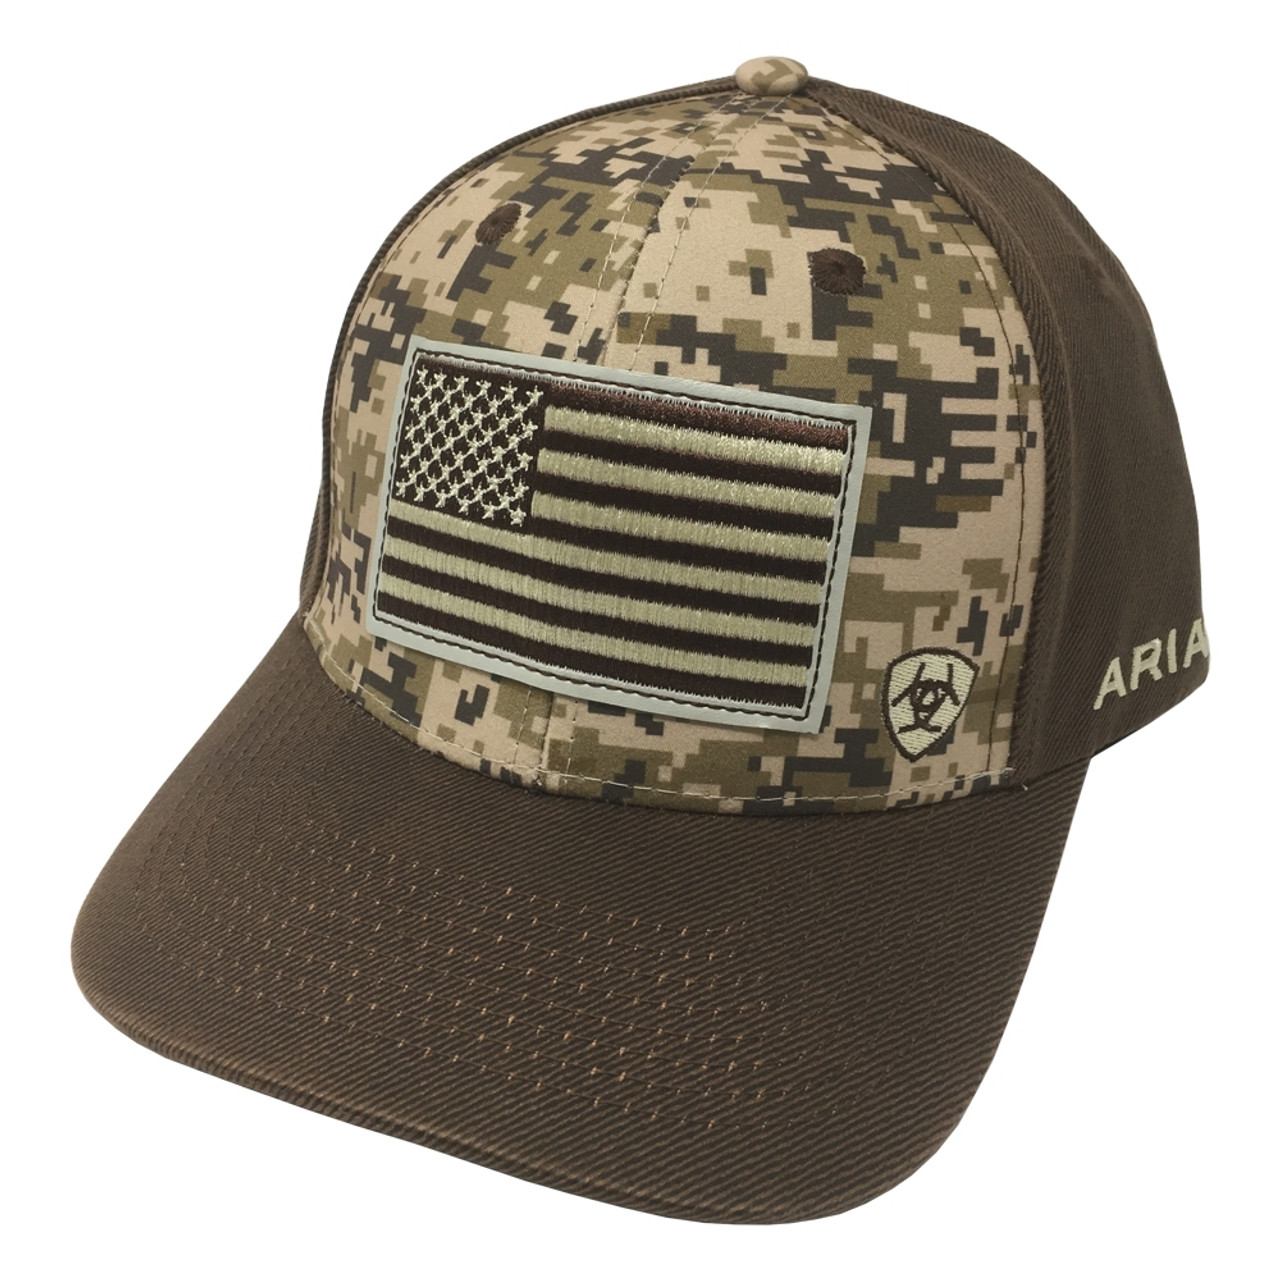 34c285aeac71f Men s Ariat Digital Camo Cap by M F 15094156 - Cowtown Cowboy Outfitters